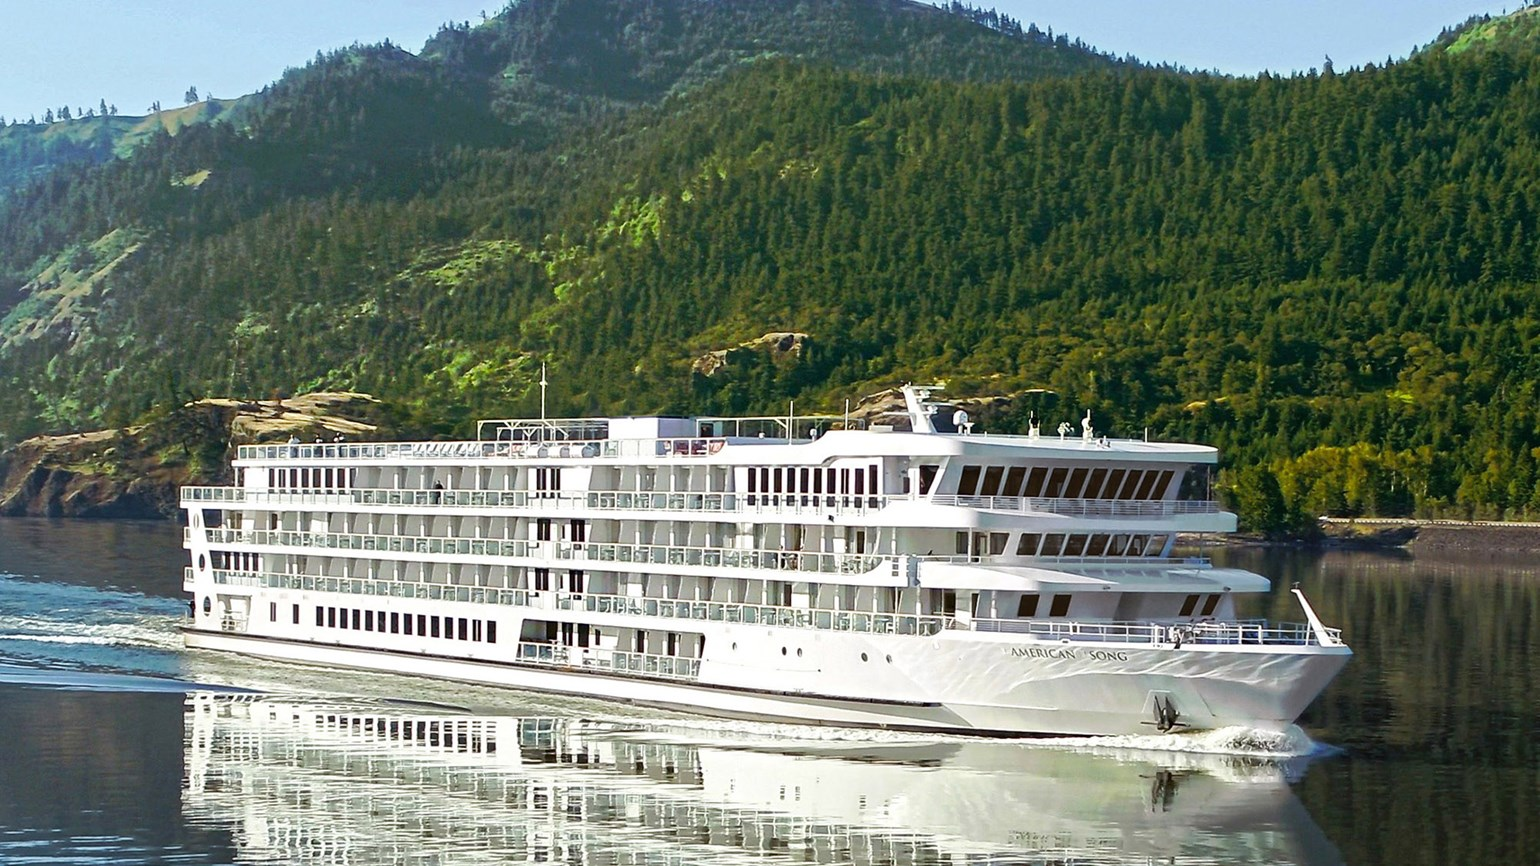 American Cruise Lines shores up its position on the water